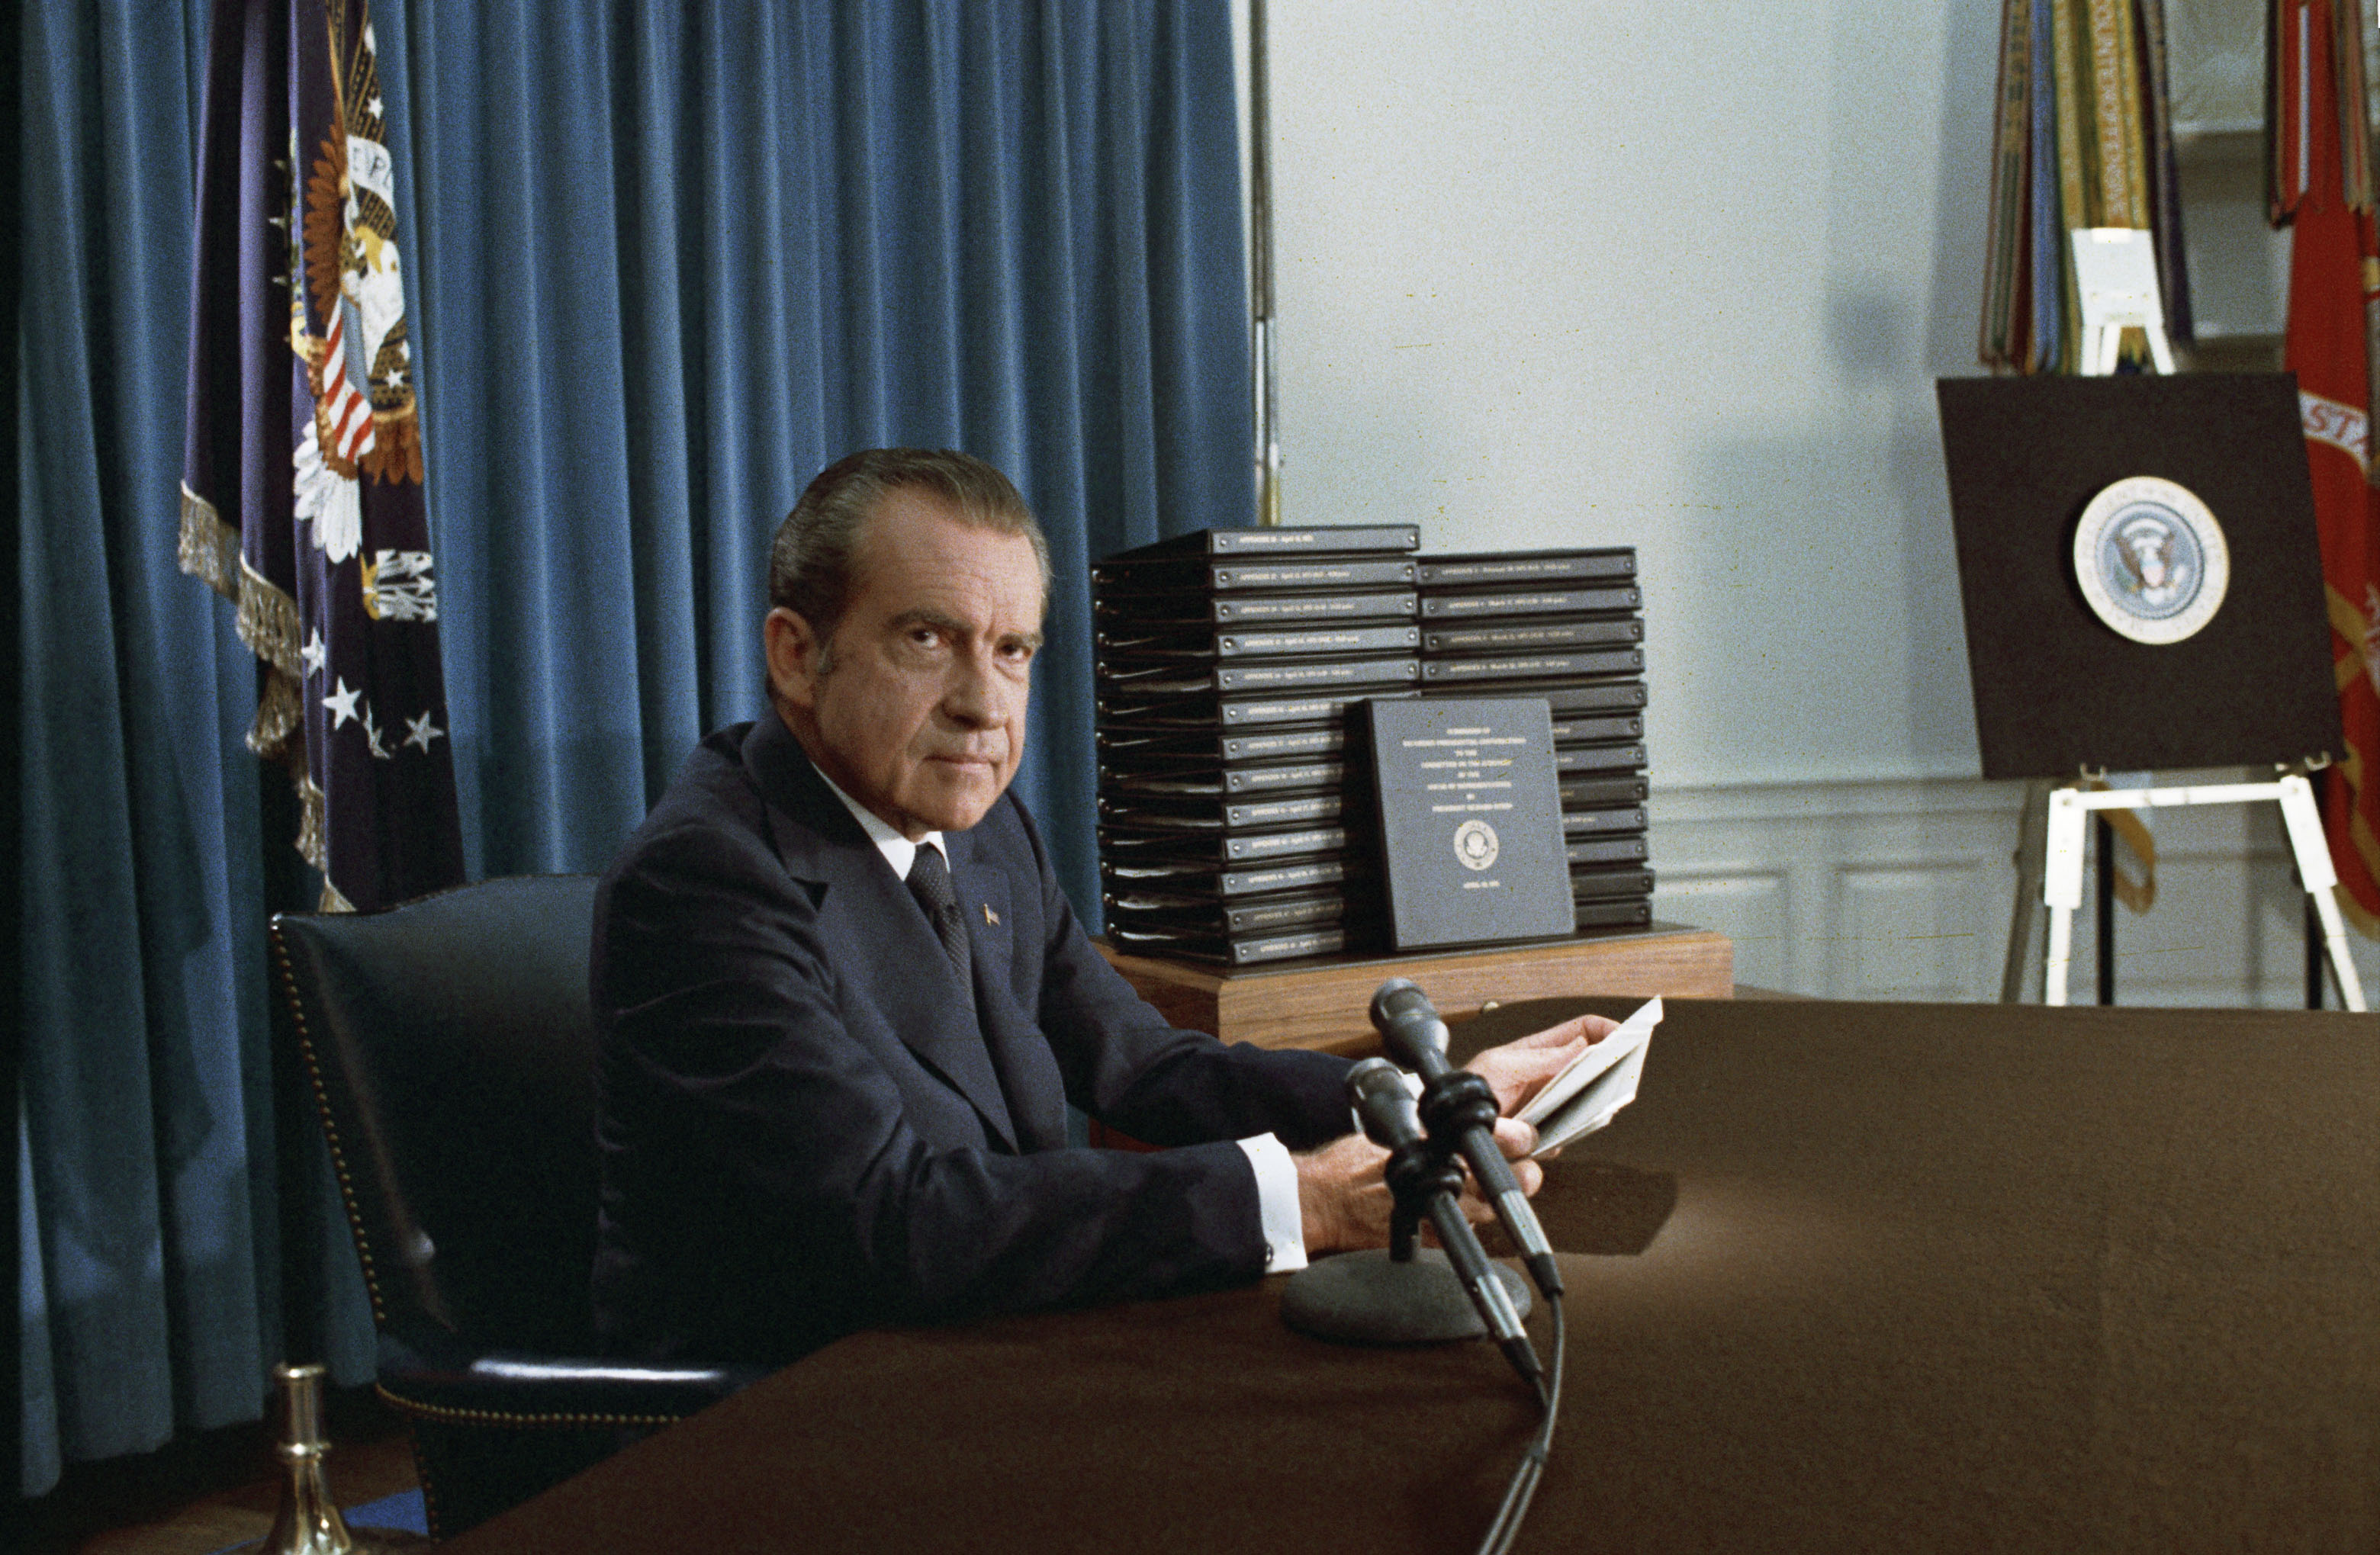 https://i0.wp.com/upload.wikimedia.org/wikipedia/commons/0/04/Nixon_edited_transcripts.jpg